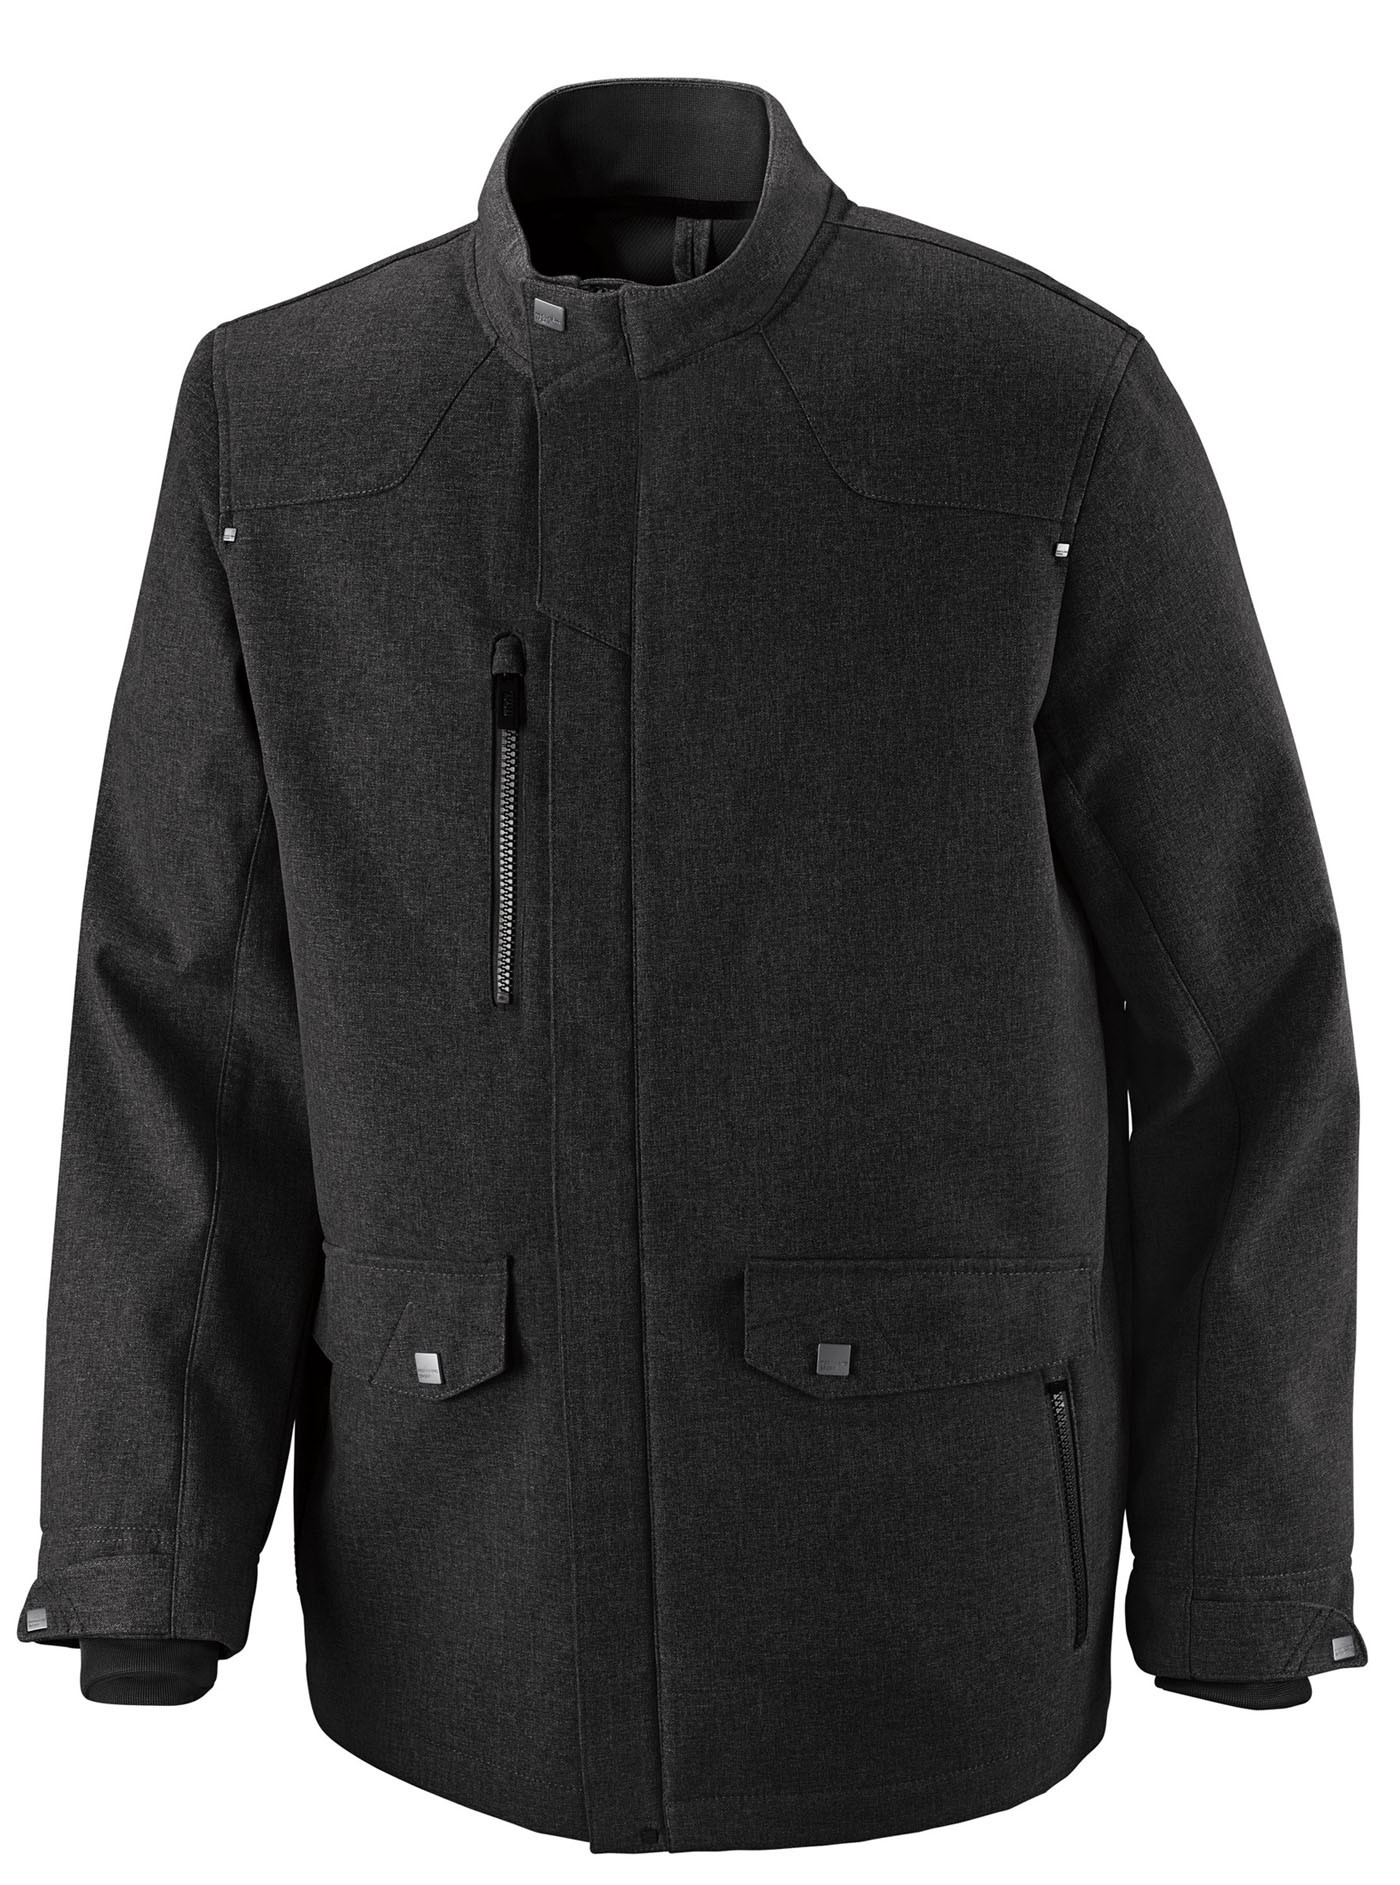 Ash City Light Bonded Jackets 88672 - Uptown Men's 3-...